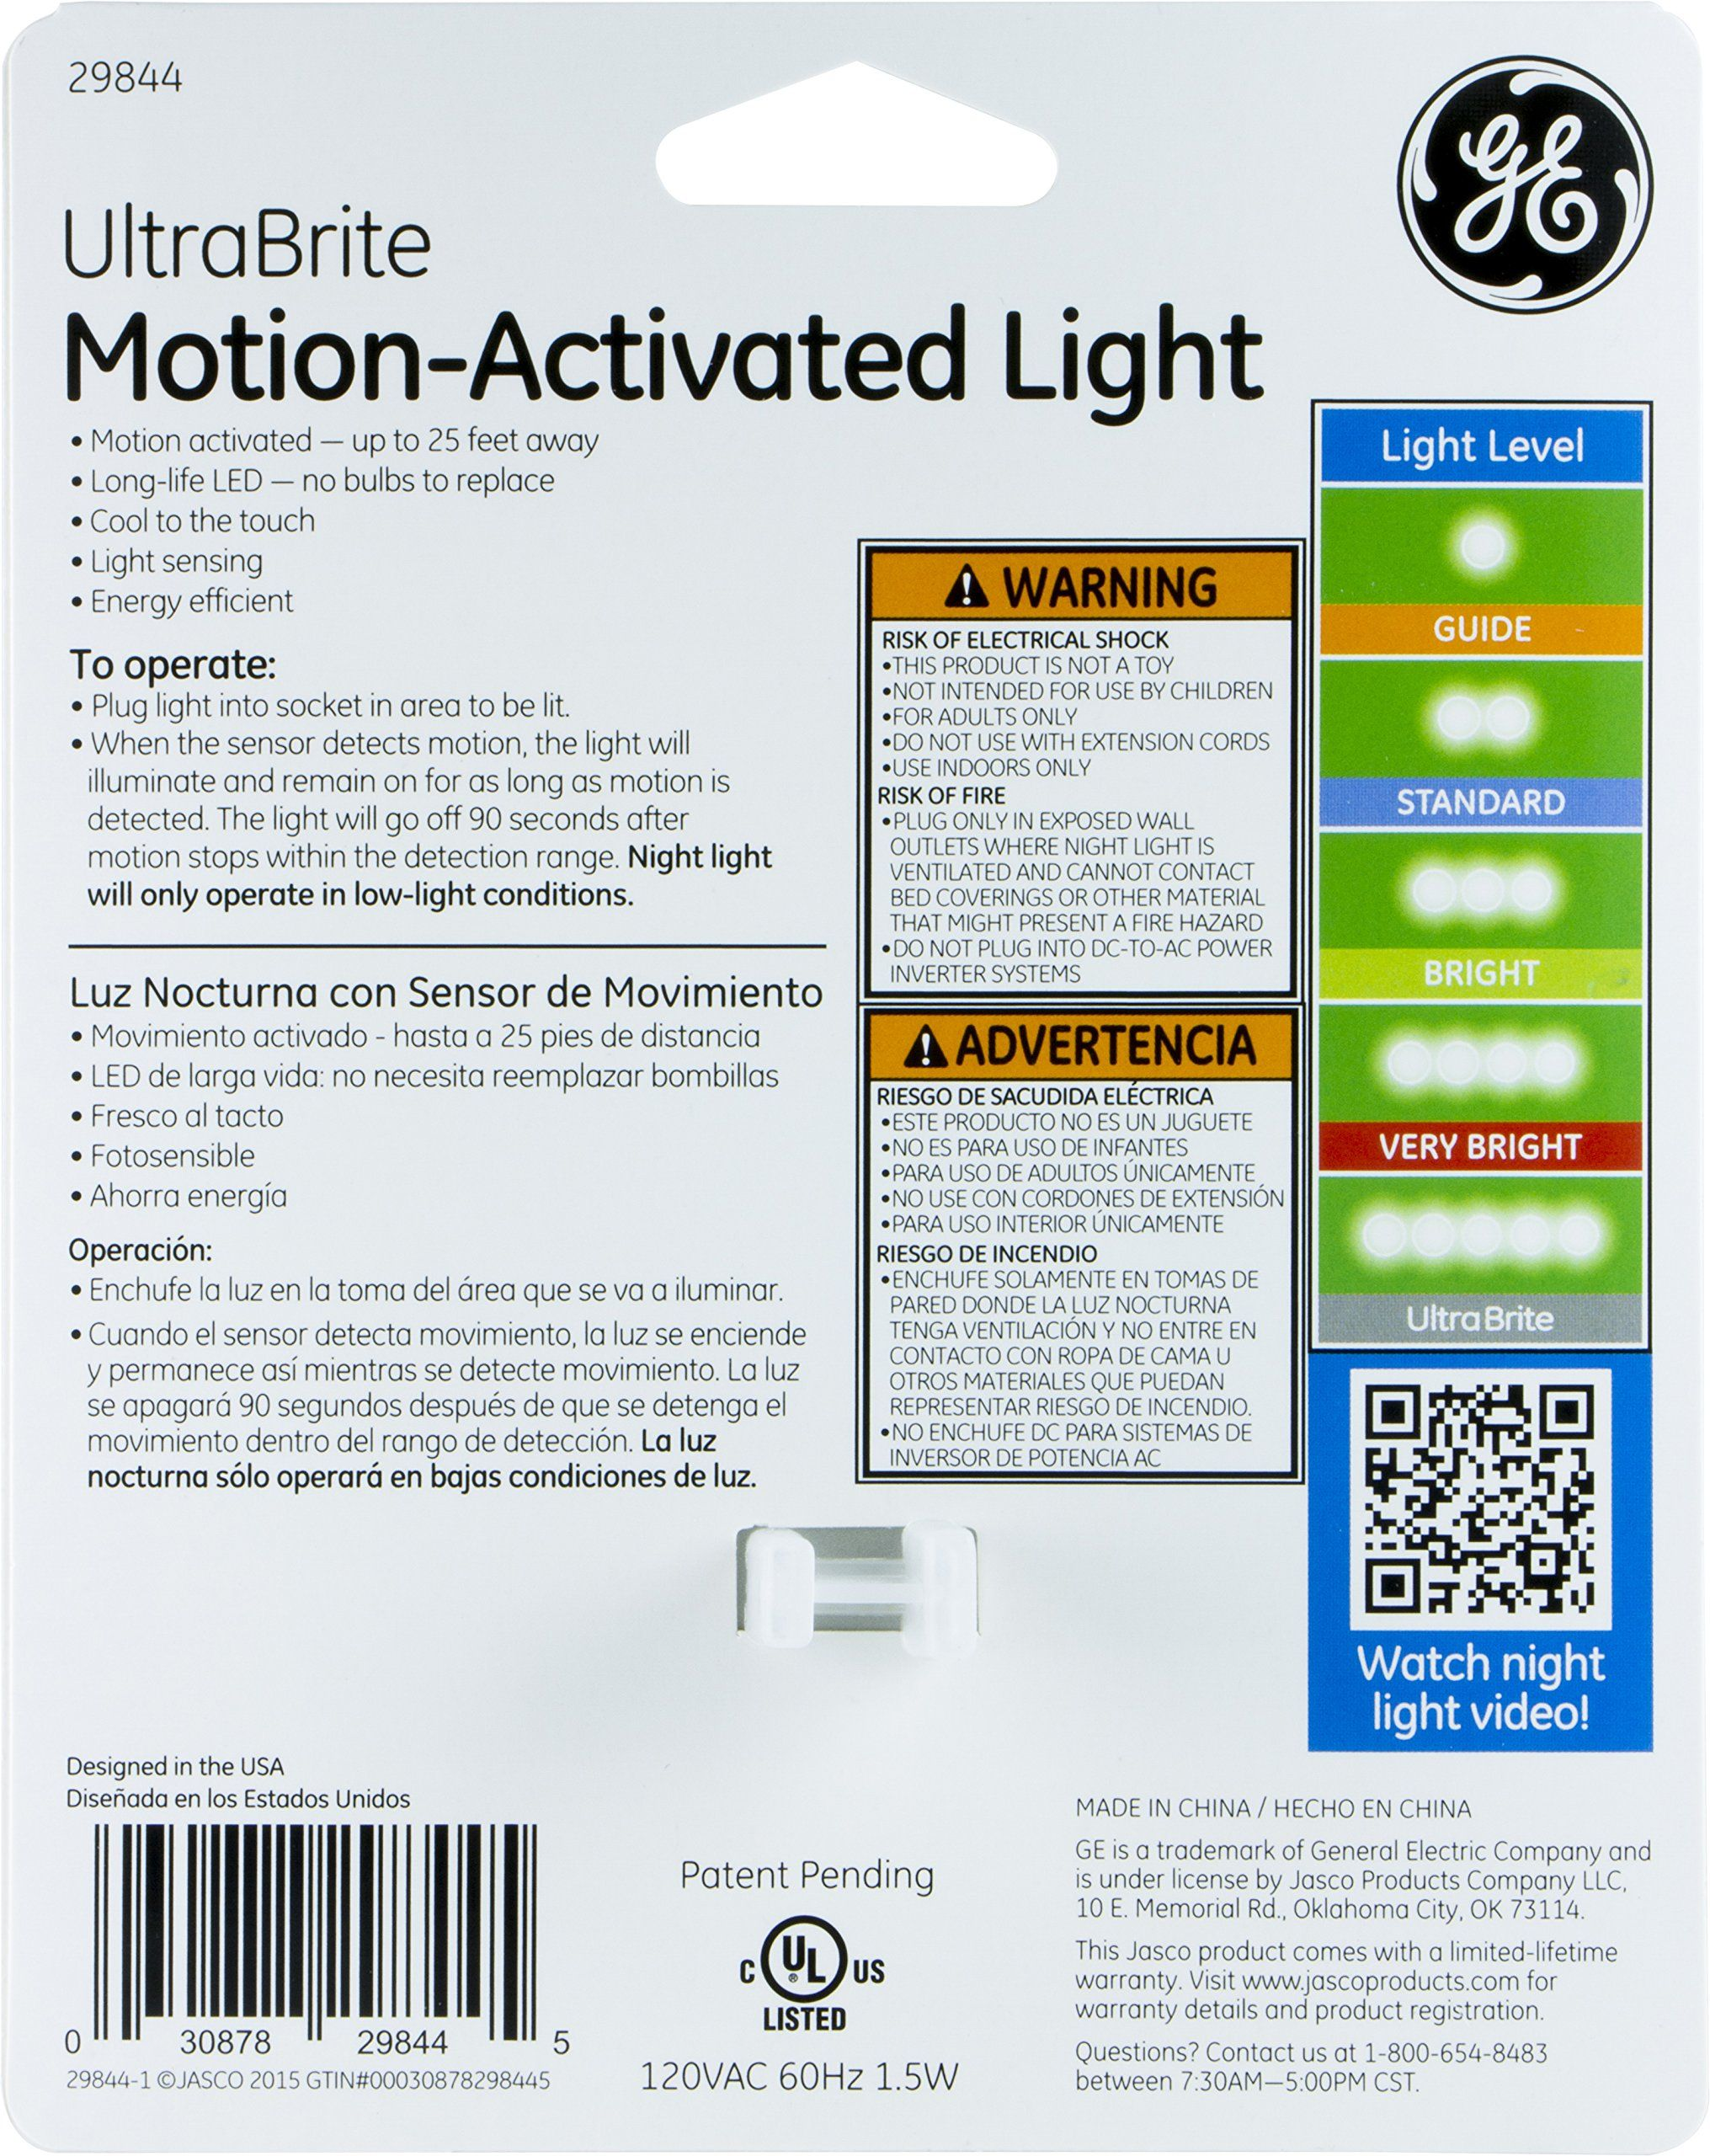 Ge Ultra Brite Motionactivated Led Light 40 Lumens Soft